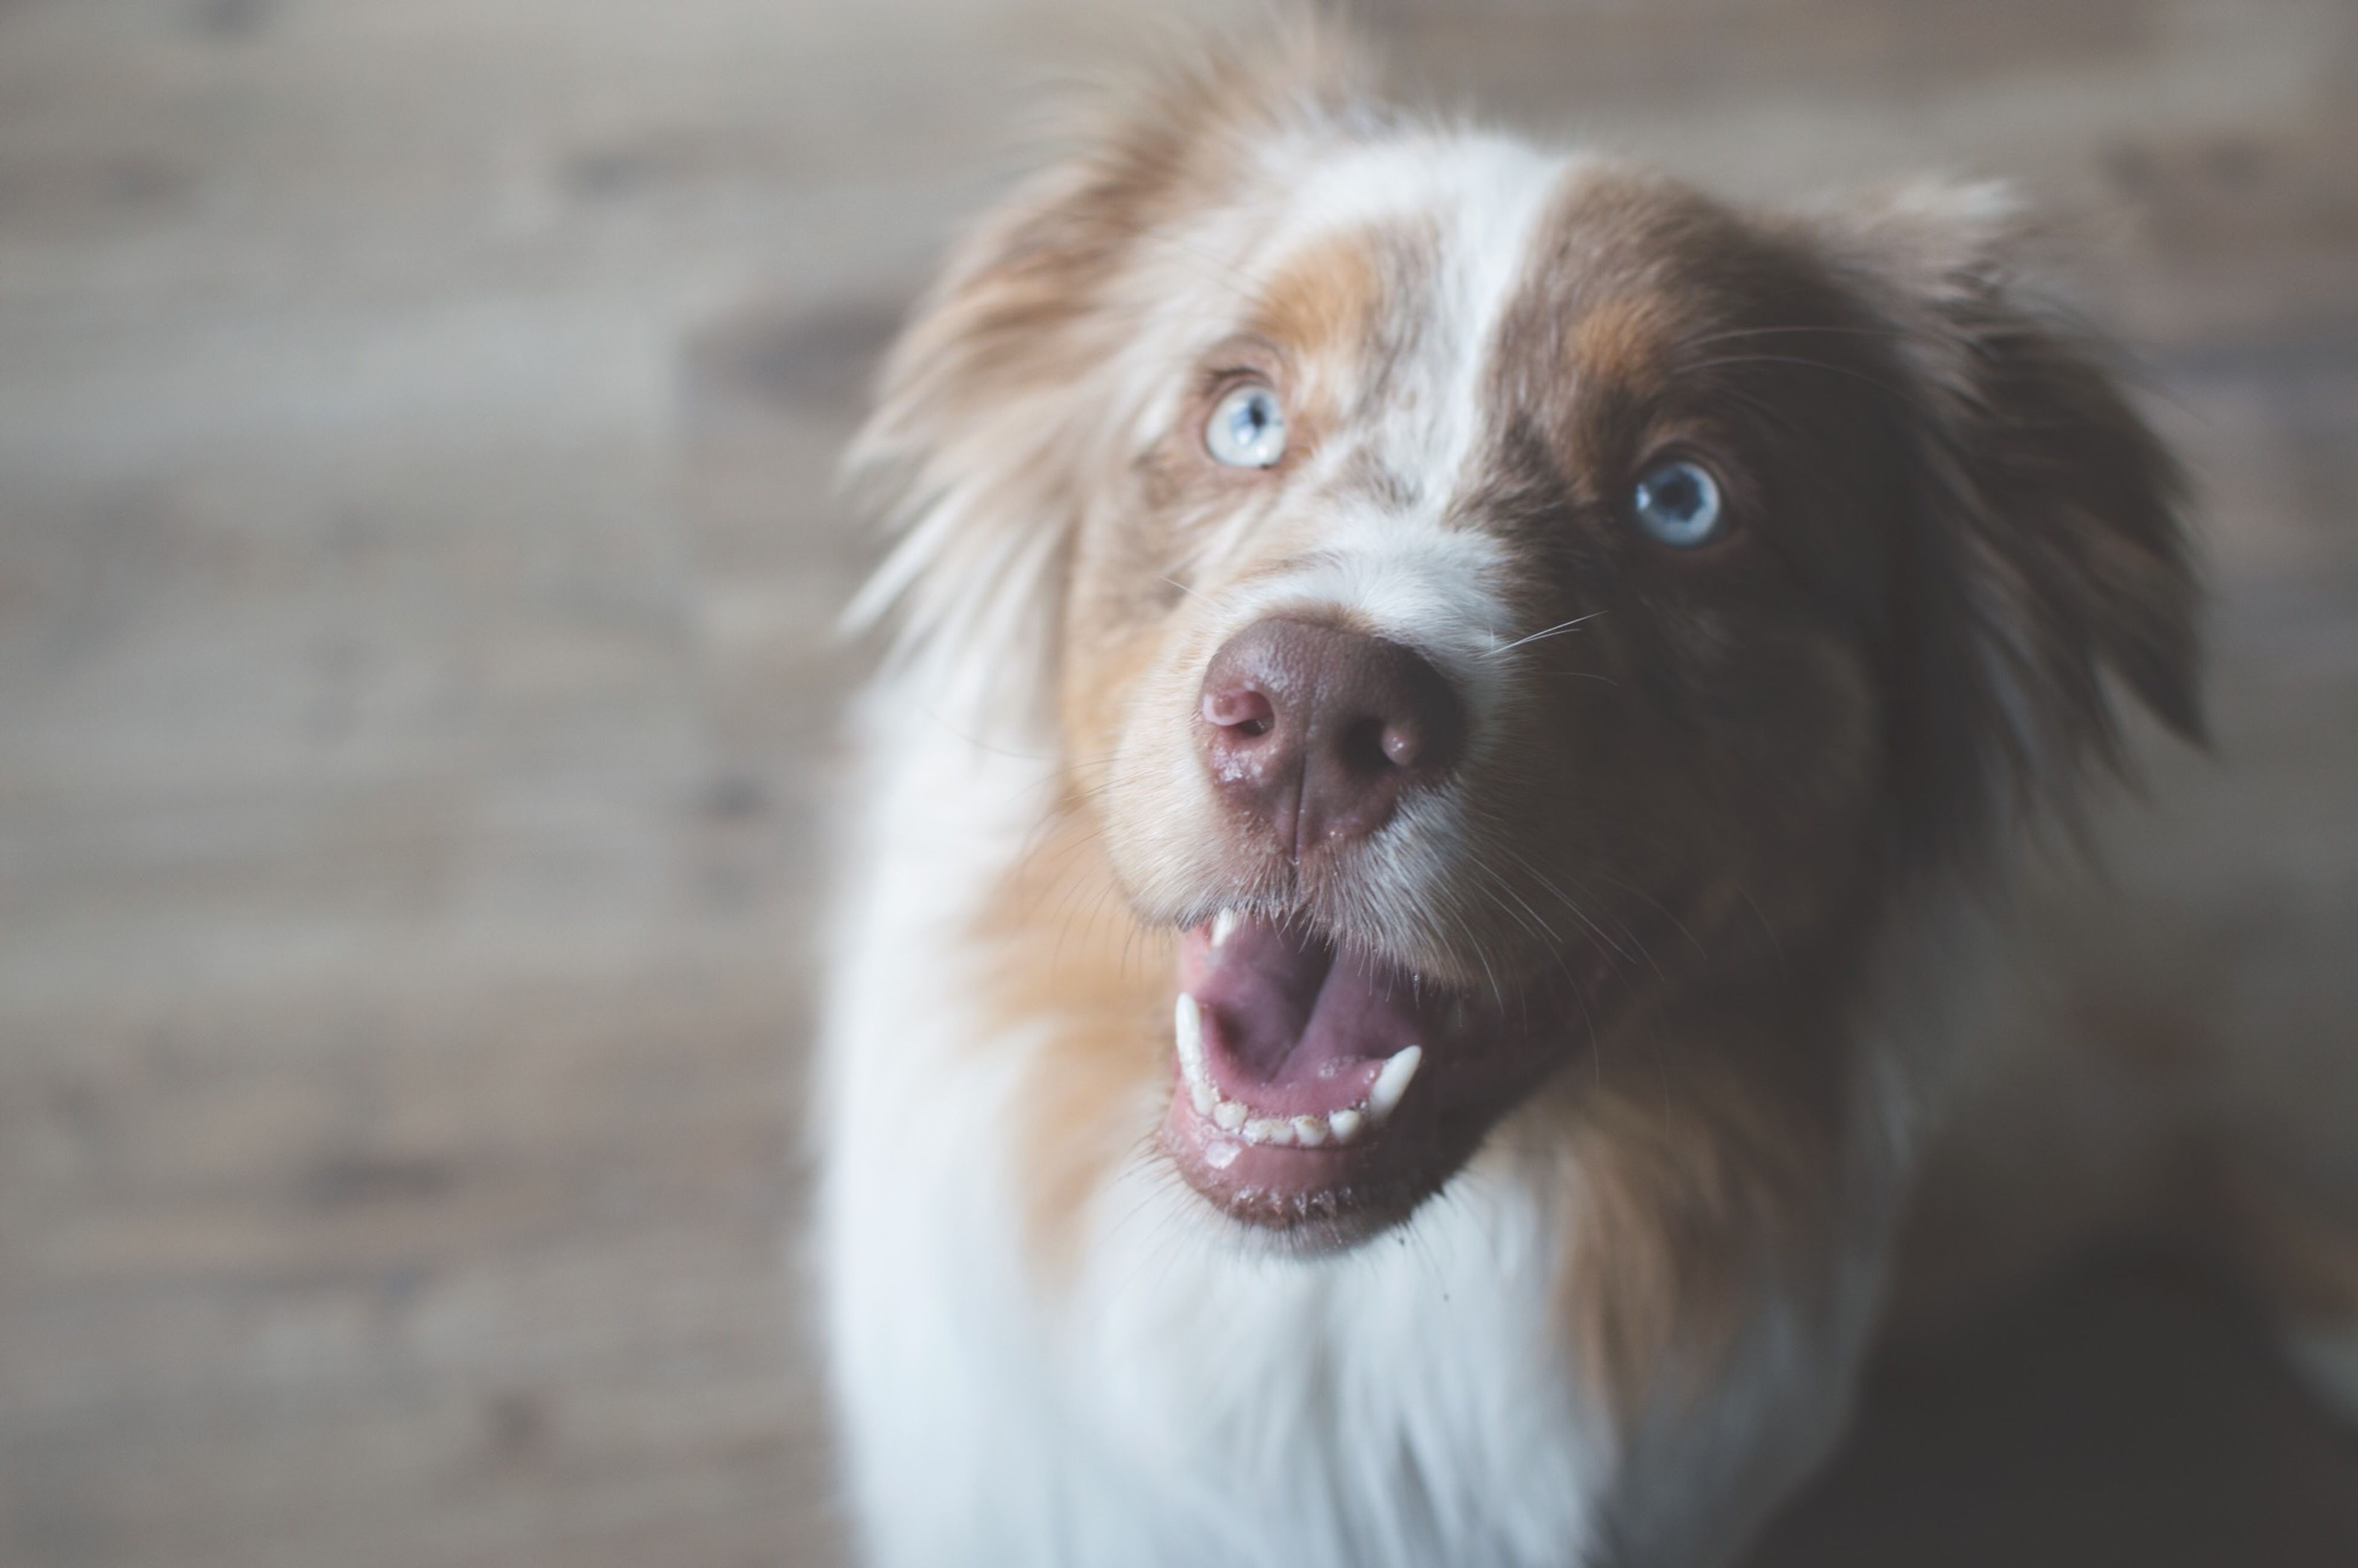 pets, animal themes, one animal, domestic animals, dog, mammal, focus on foreground, close-up, looking at camera, portrait, animal head, animal hair, sticking out tongue, no people, mouth open, animal body part, day, cute, front view